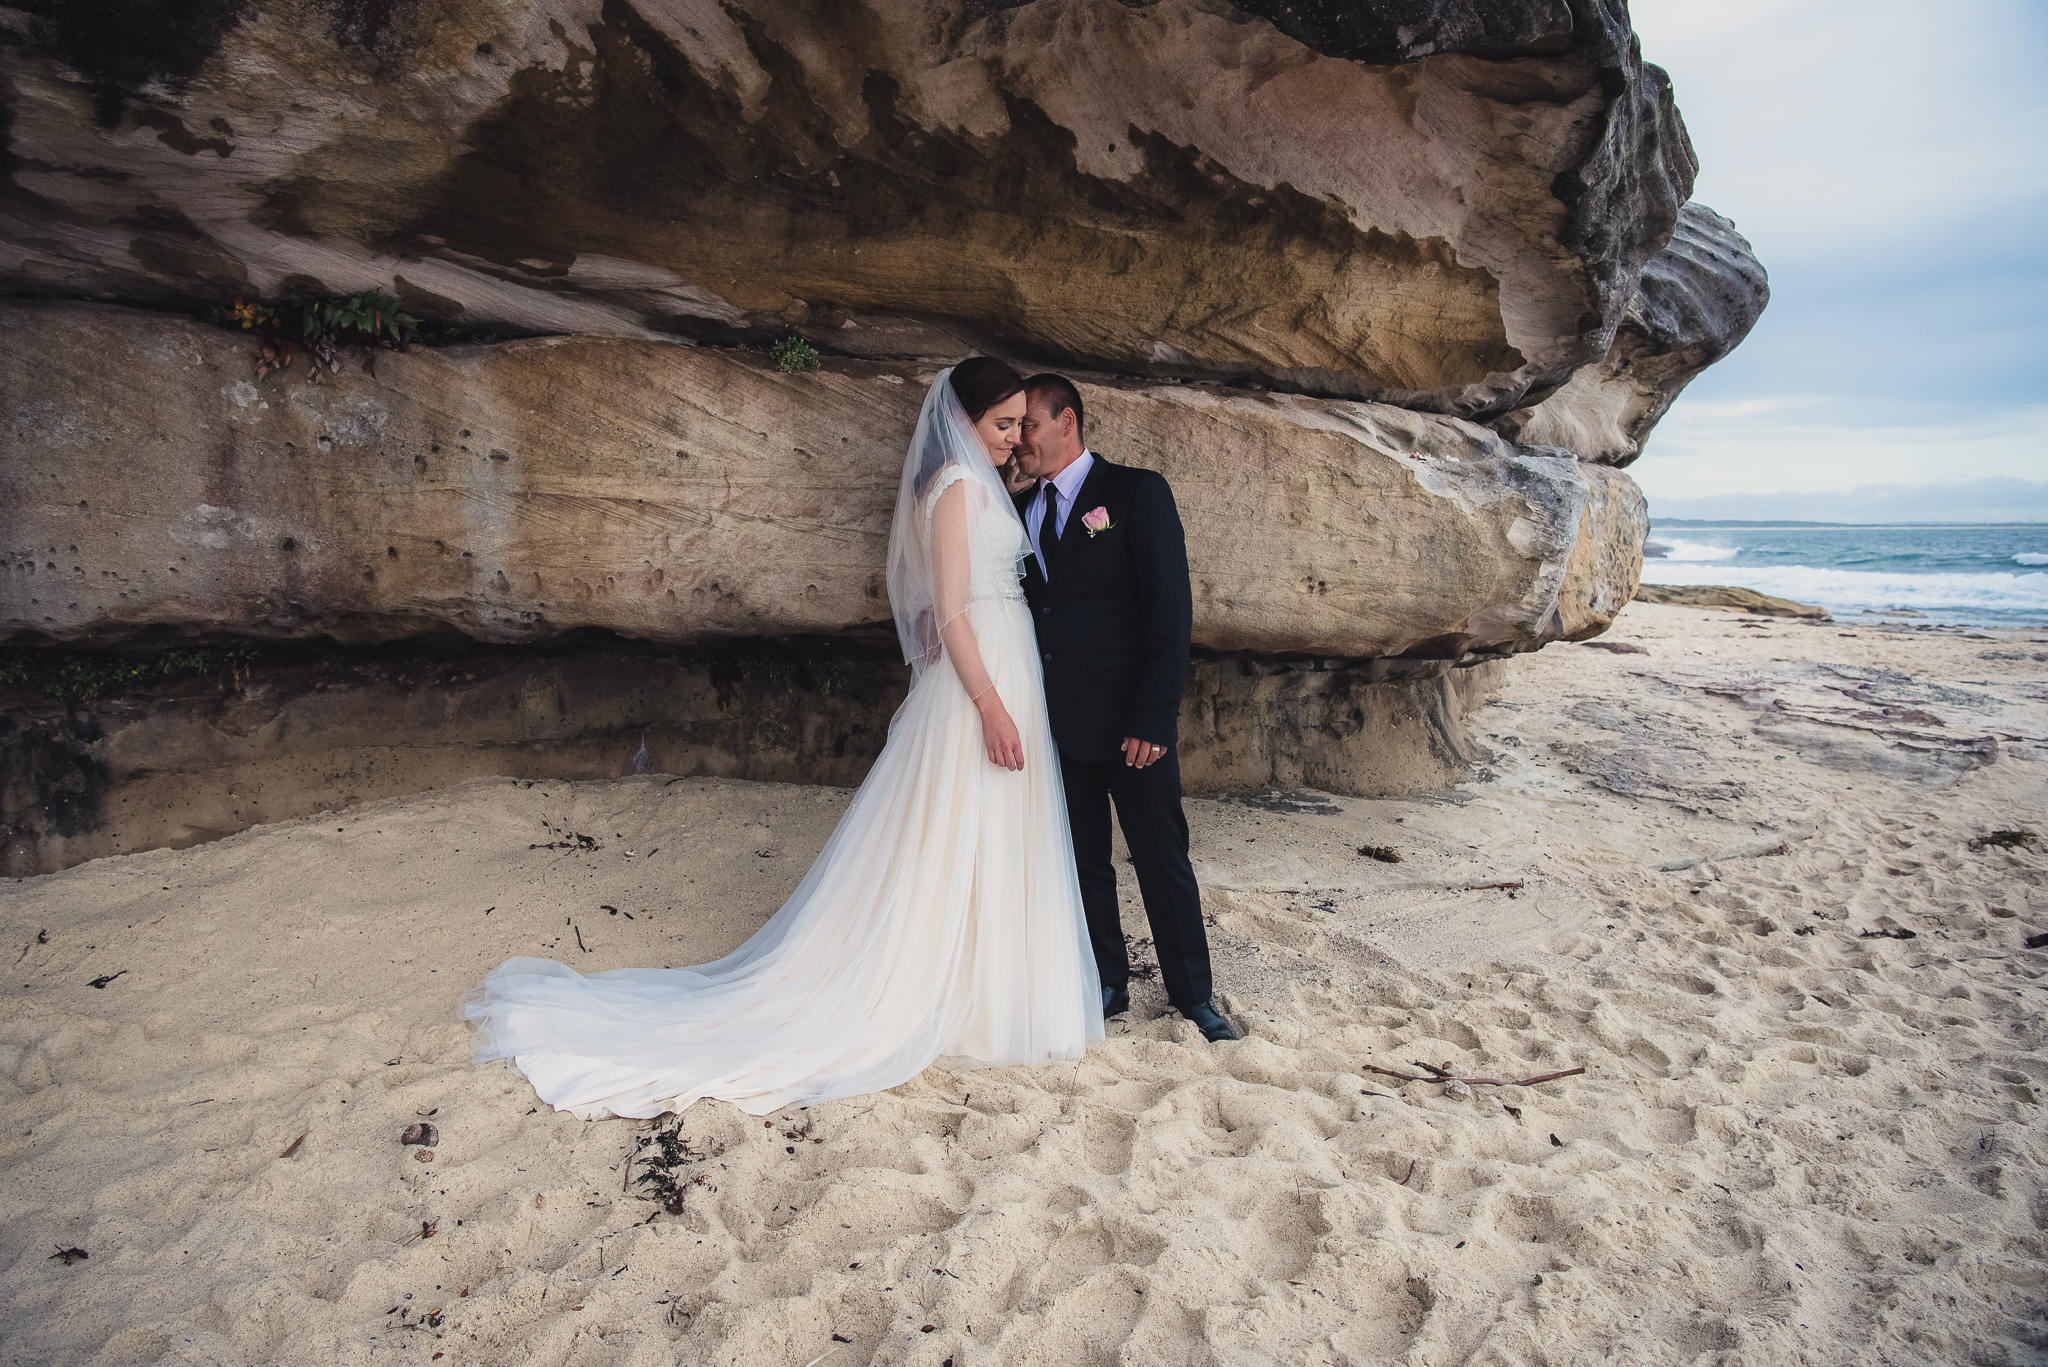 bride and groom on the beach during wedding photos